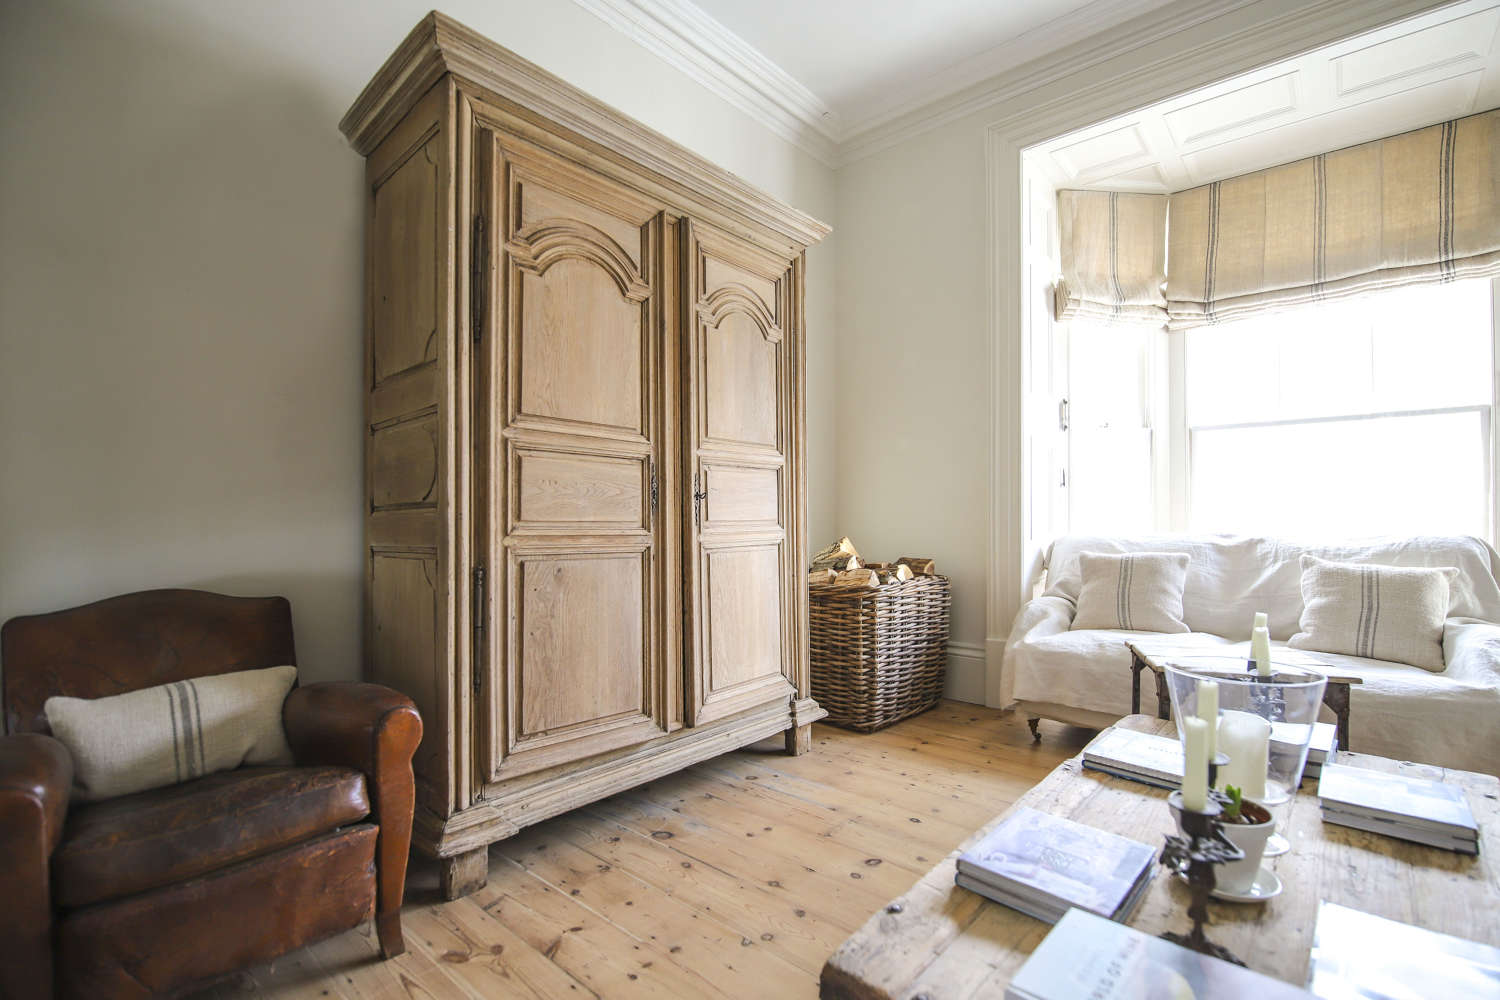 18th century French antique oak armoire wardrobe with hanging rail